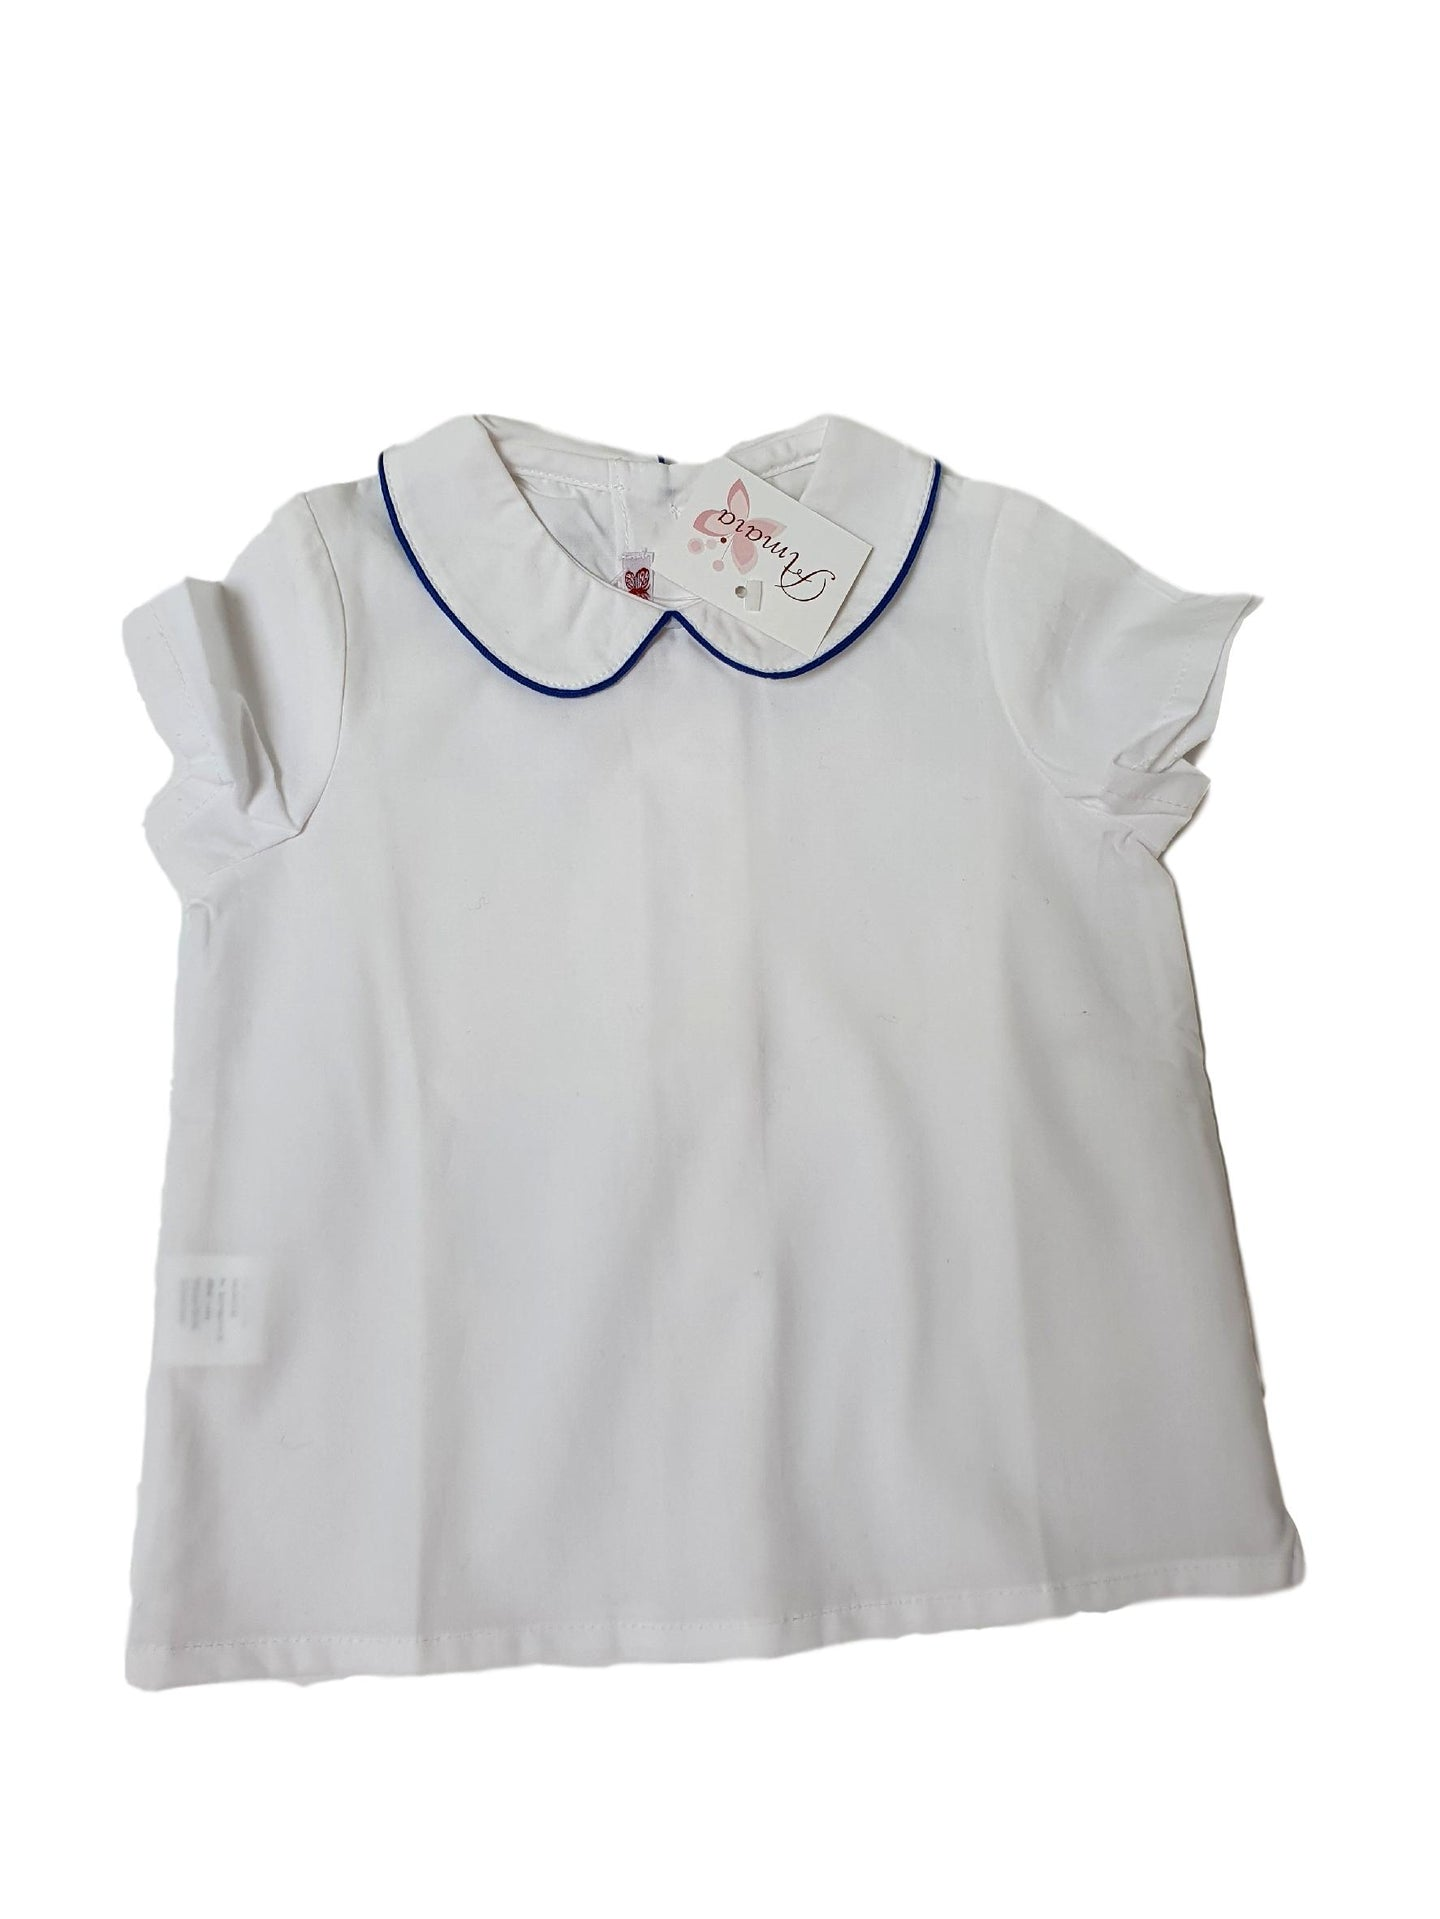 AMAIA outlet girl or boy shirt 6m and 12m